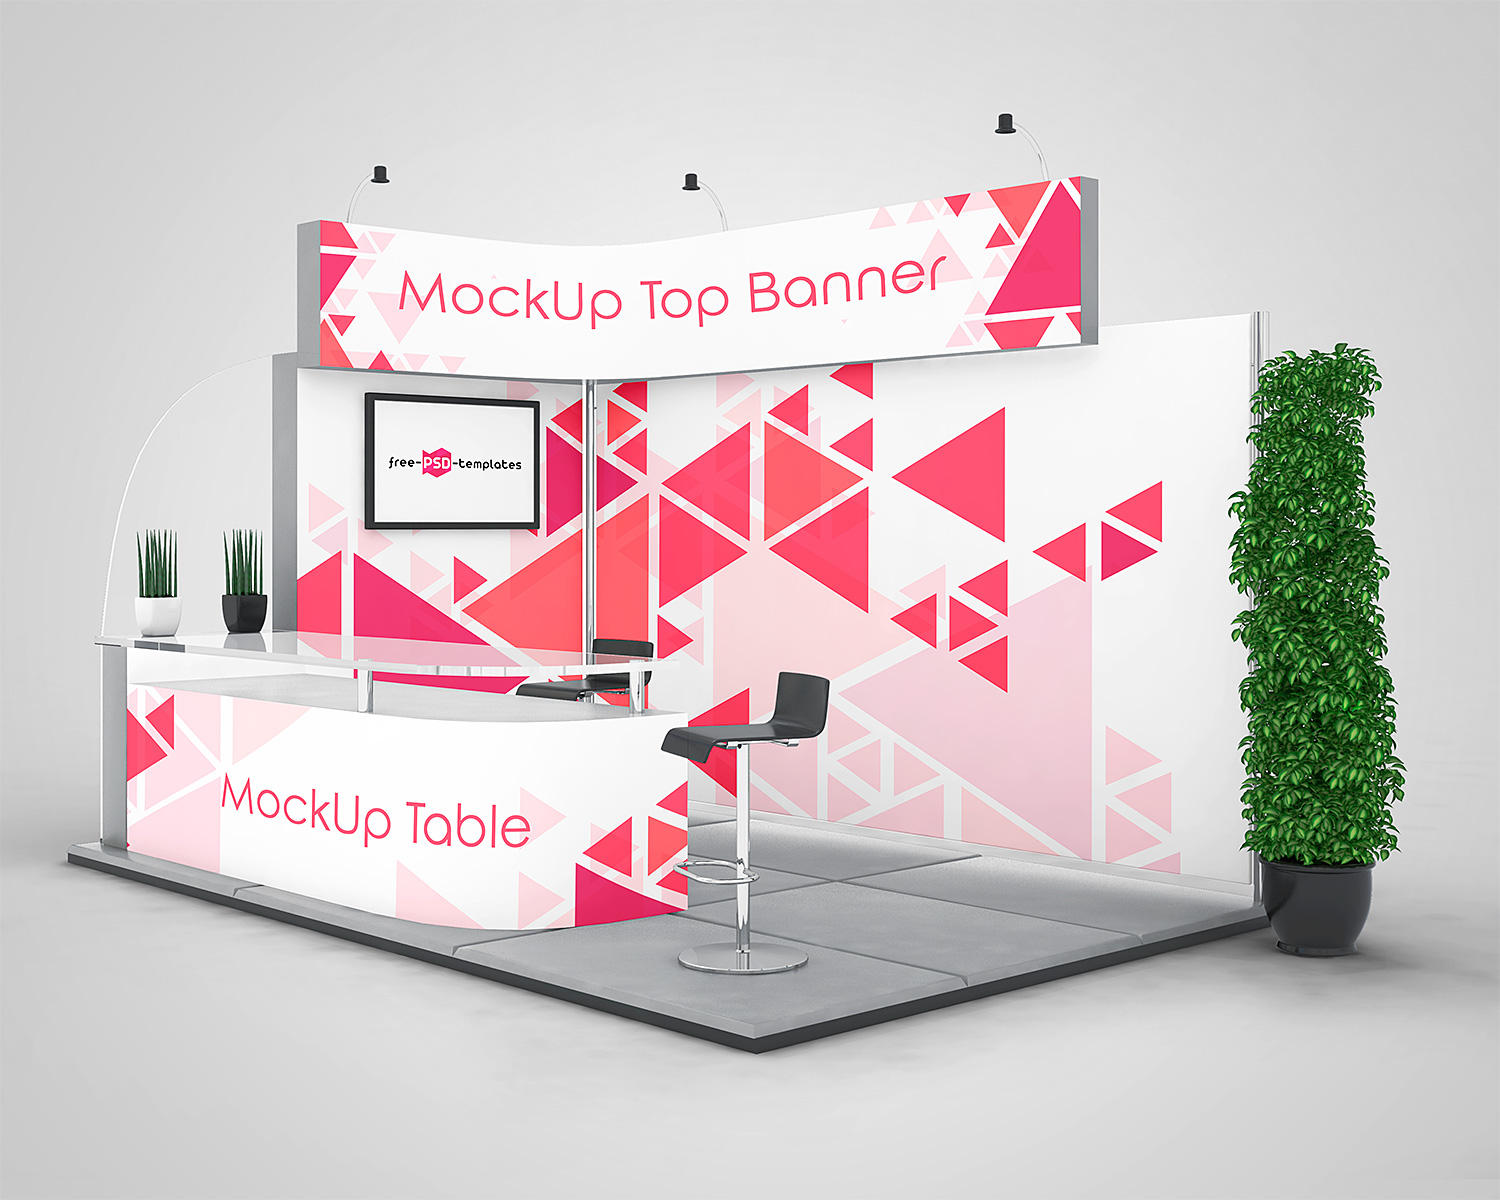 Mock Up Exhibition Stand Psd Free Download : Exhibition stand mock ups free in psd mockup